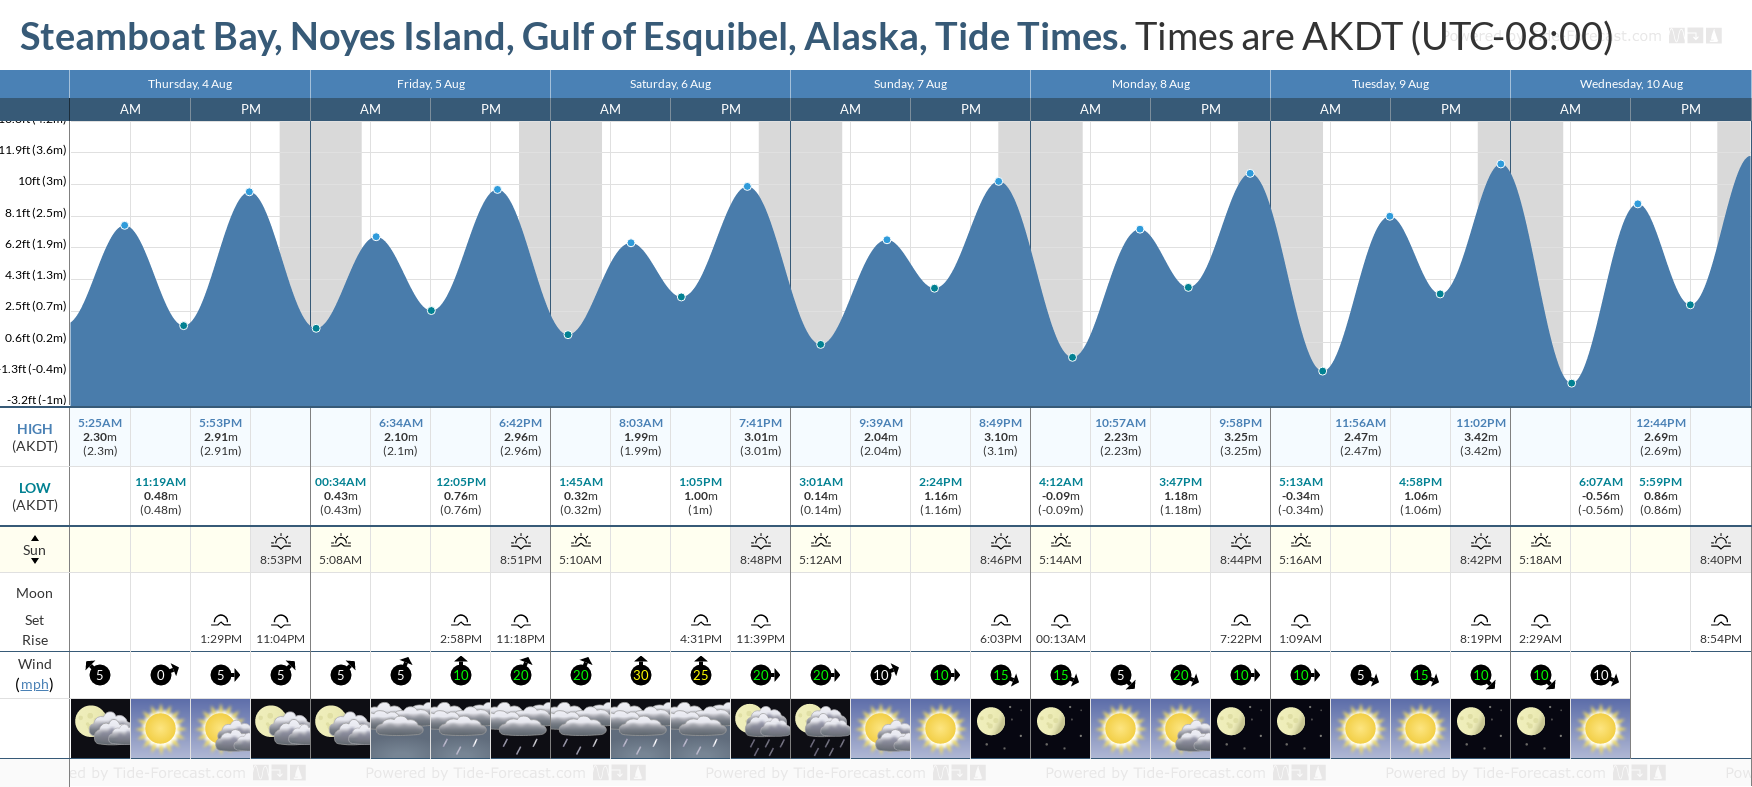 Steamboat Bay, Noyes Island, Gulf of Esquibel, Alaska Tide Chart including high and low tide tide times for the next 7 days